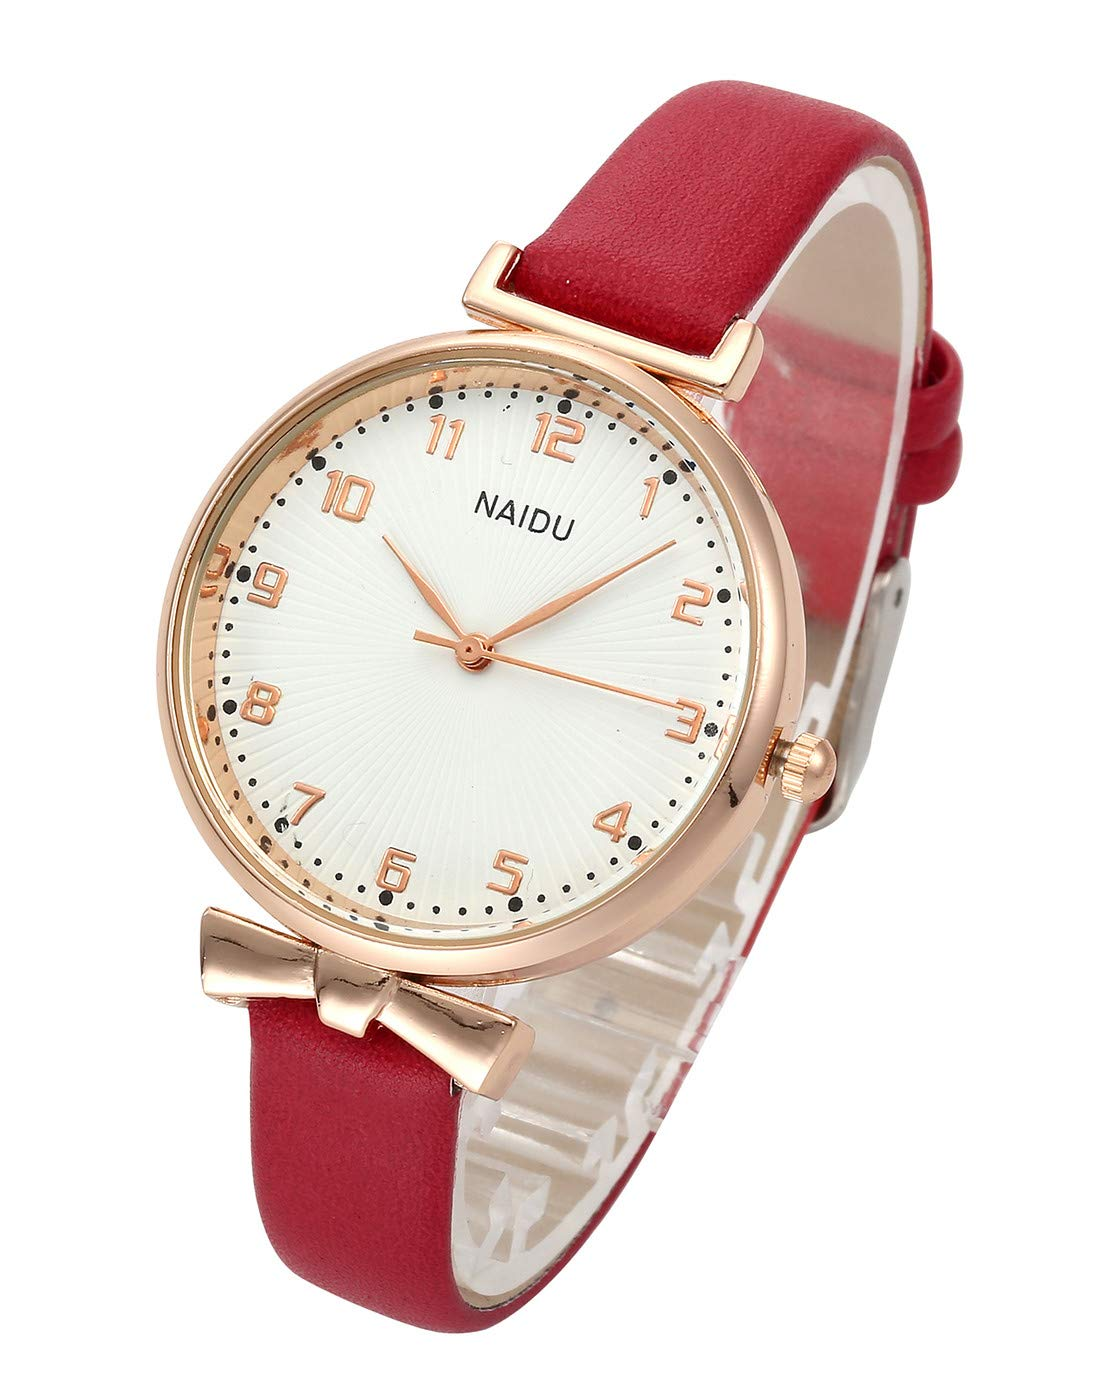 Top Plaza Womens Ladies Classic Simple Leather Analog Quartz Wrist Watch Rose Gold Case Arabic Numerals Casual Dress Watches